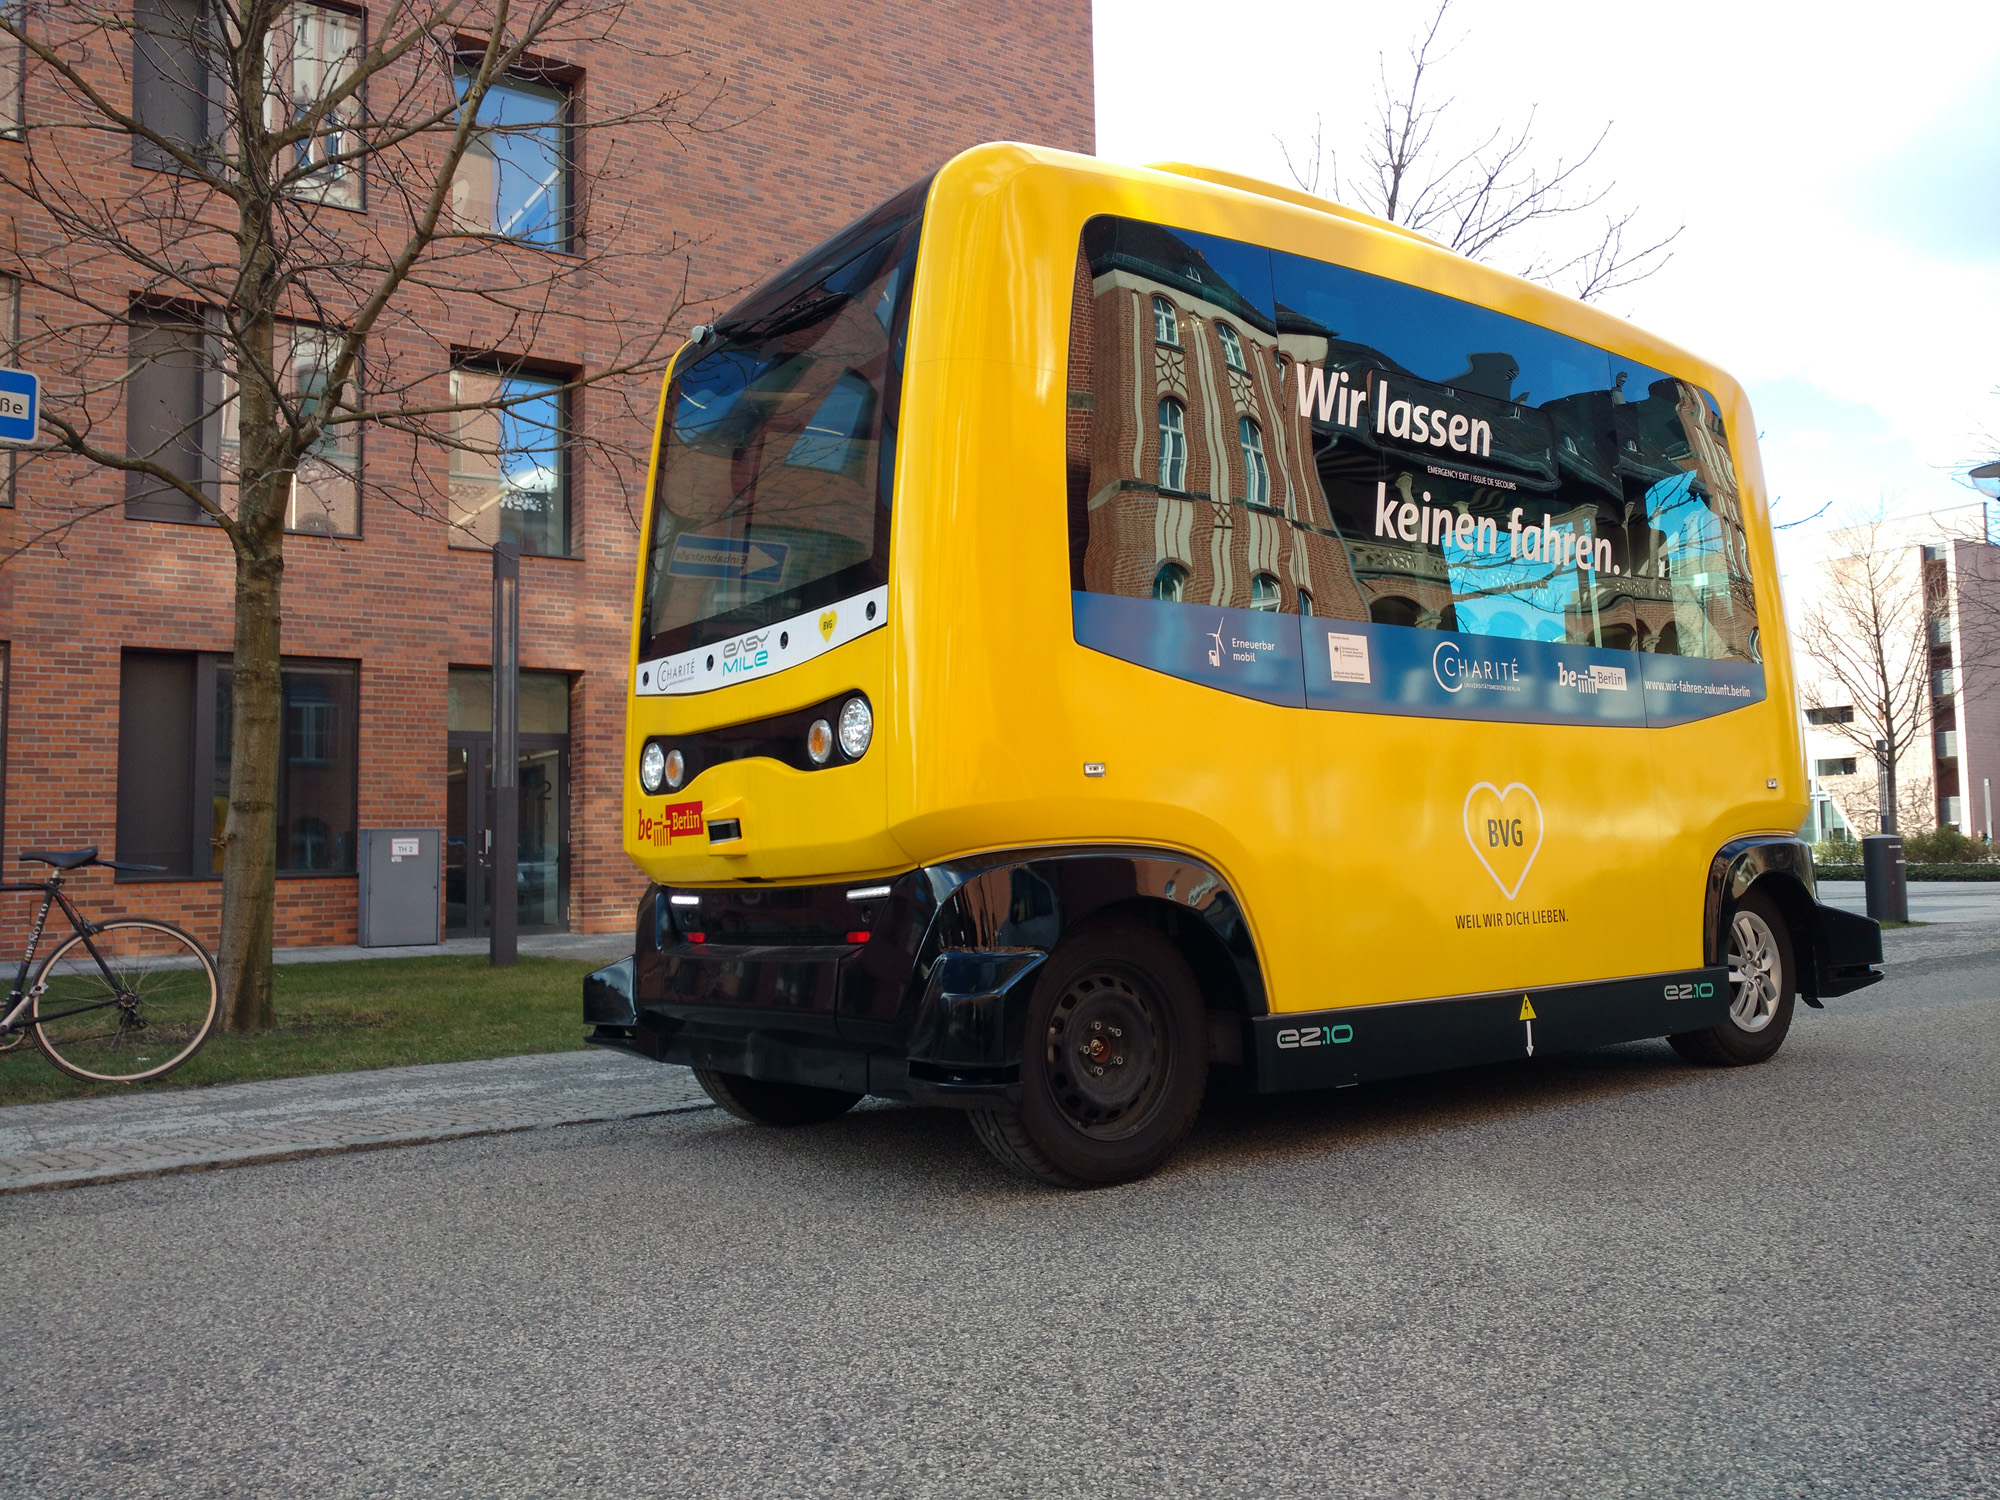 Study finds automated shuttle buses 'opens multitude of possibilities'